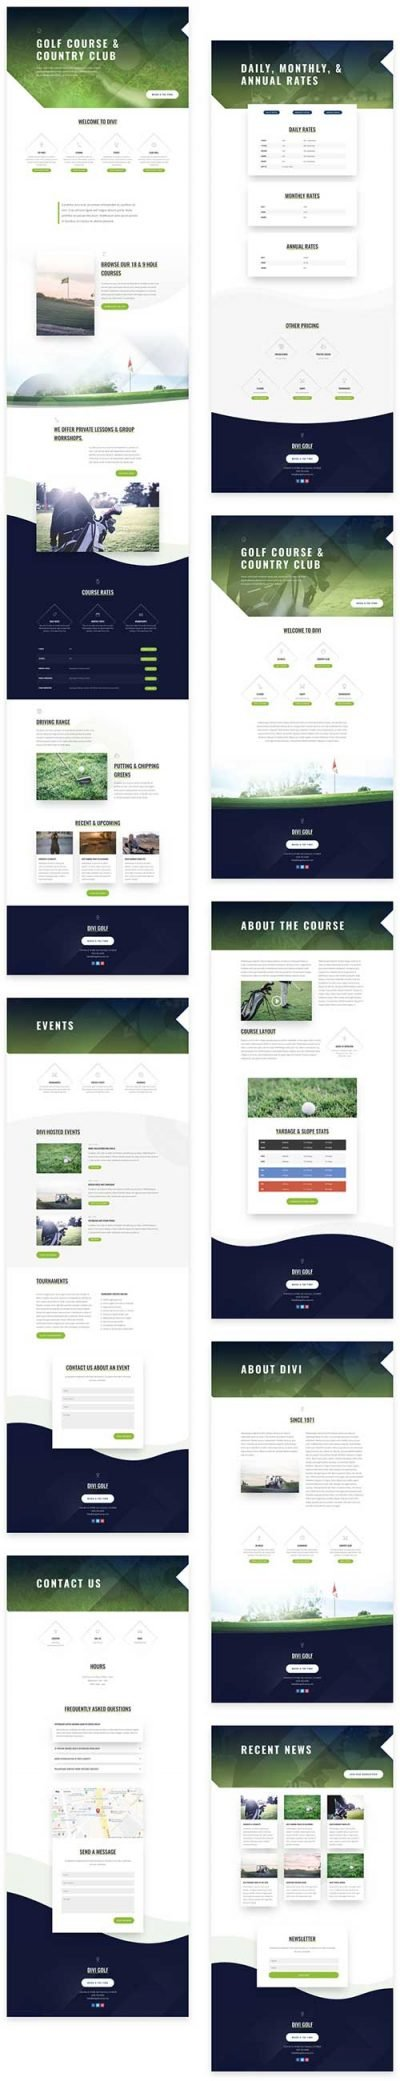 divi golf course layout template